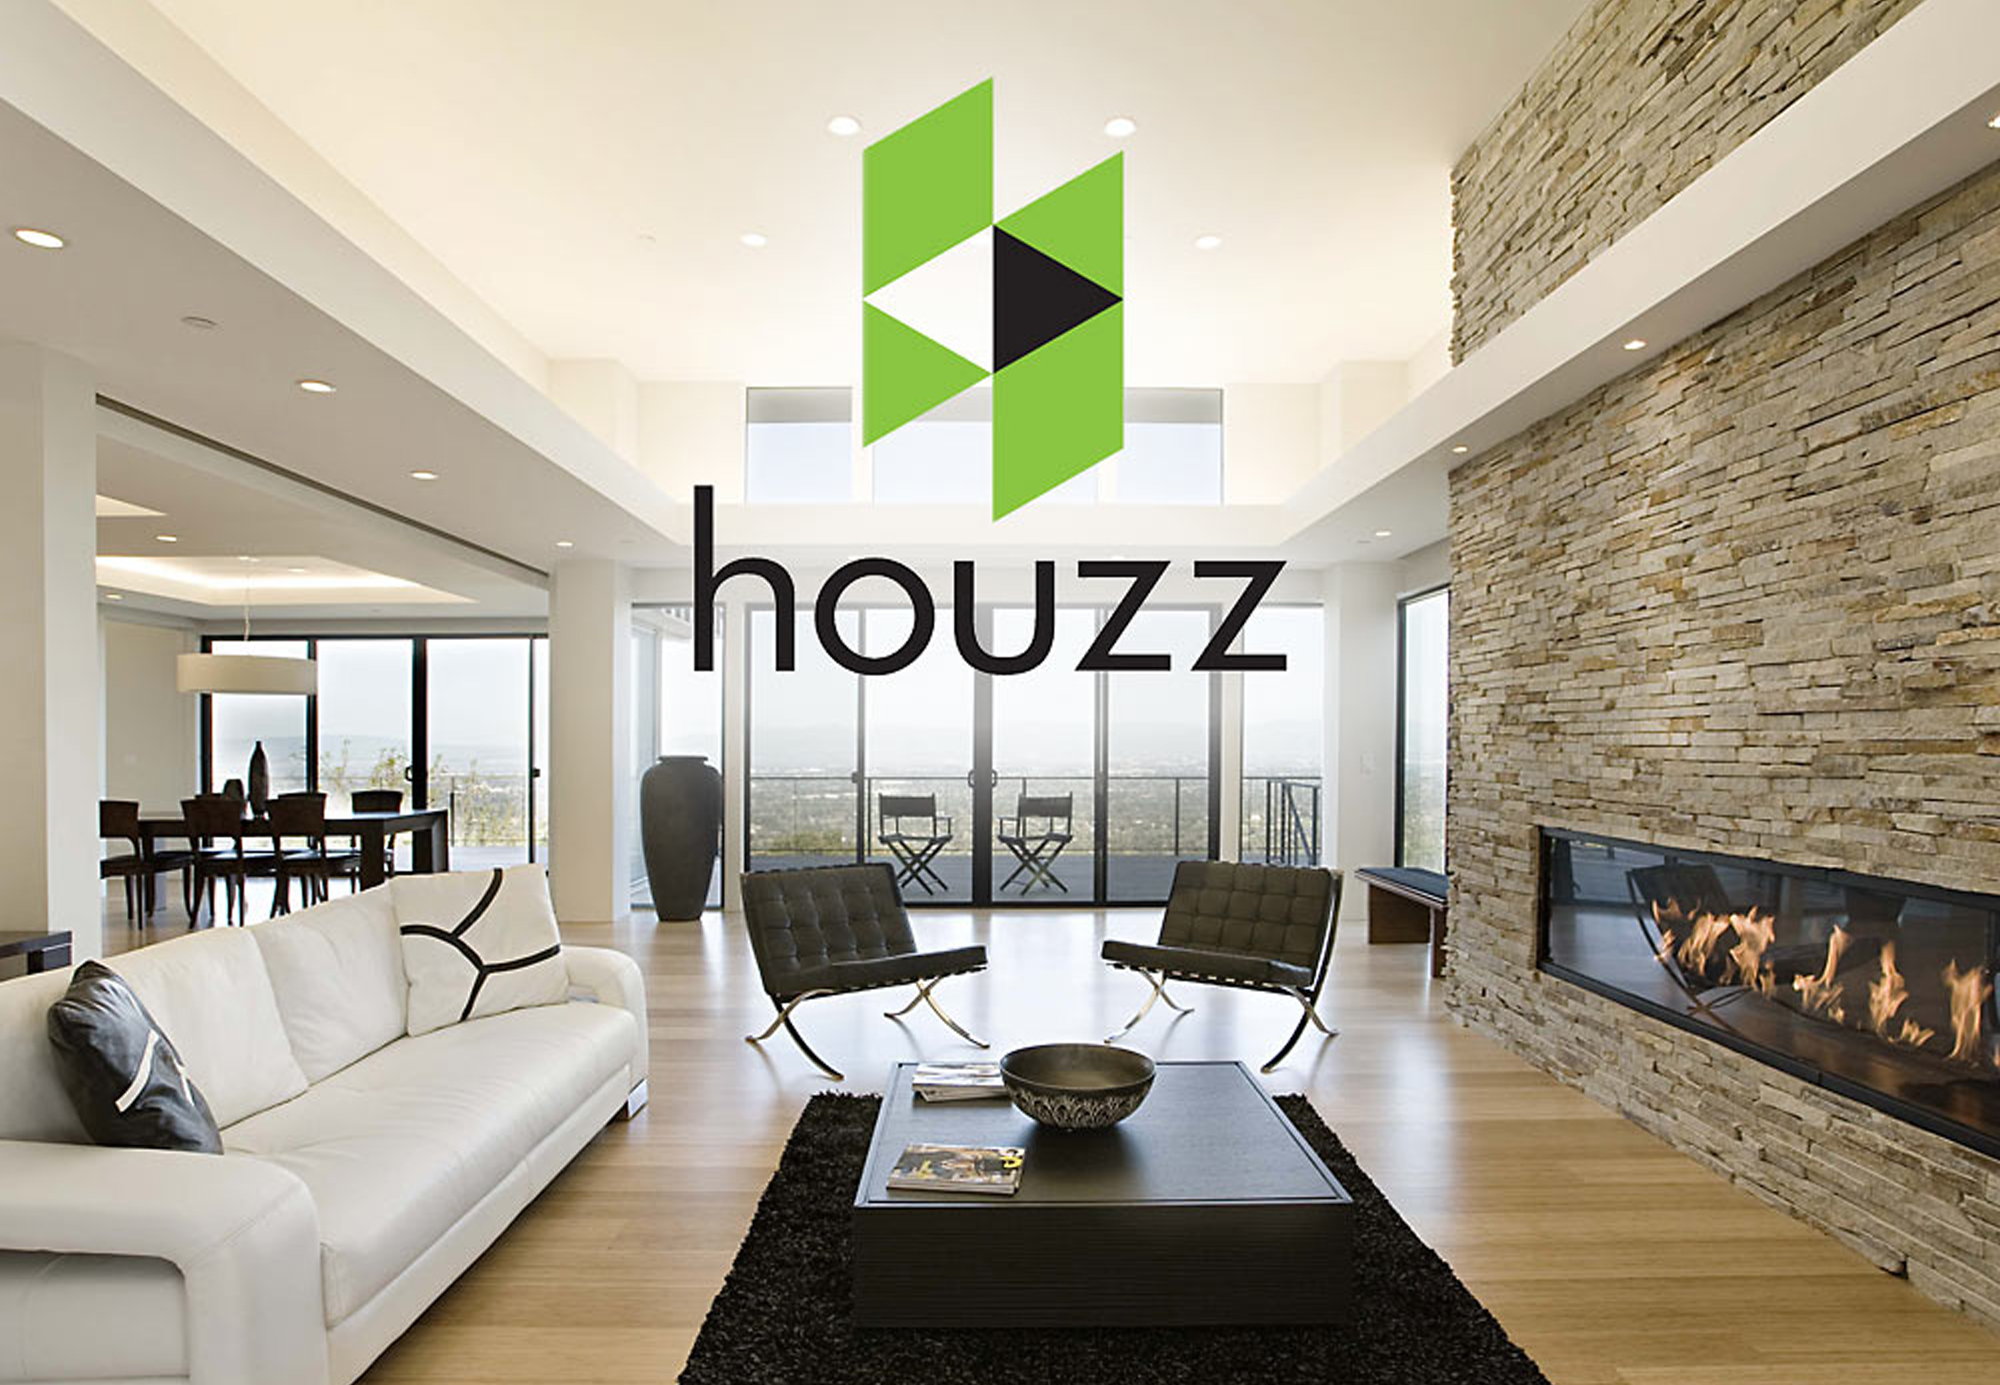 Houzz Is The Perfect Platform To Design The Interior Your Own Home!